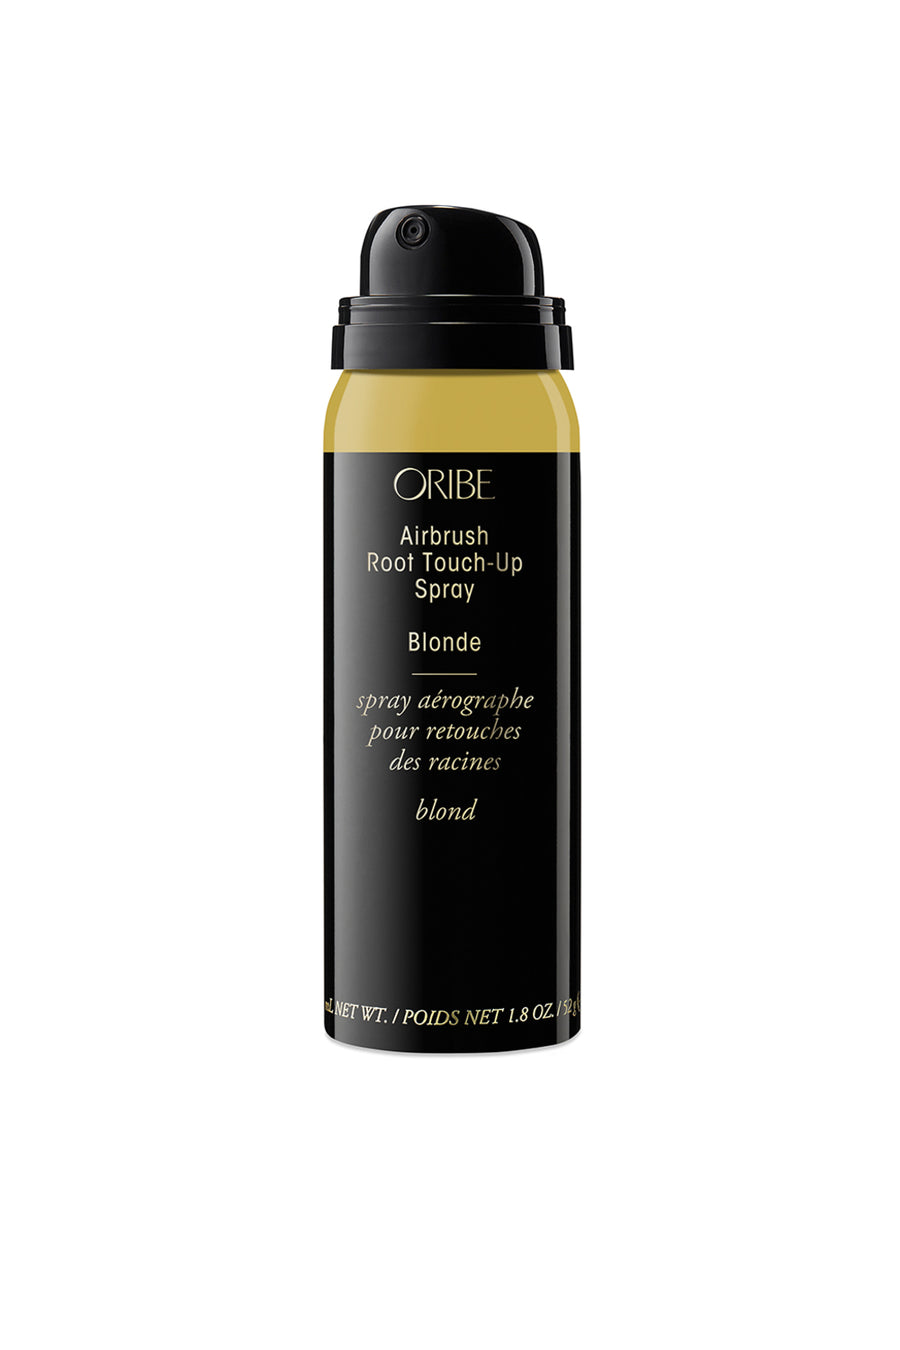 Oribe Airbrush Root Touch-Up Spray 75ml